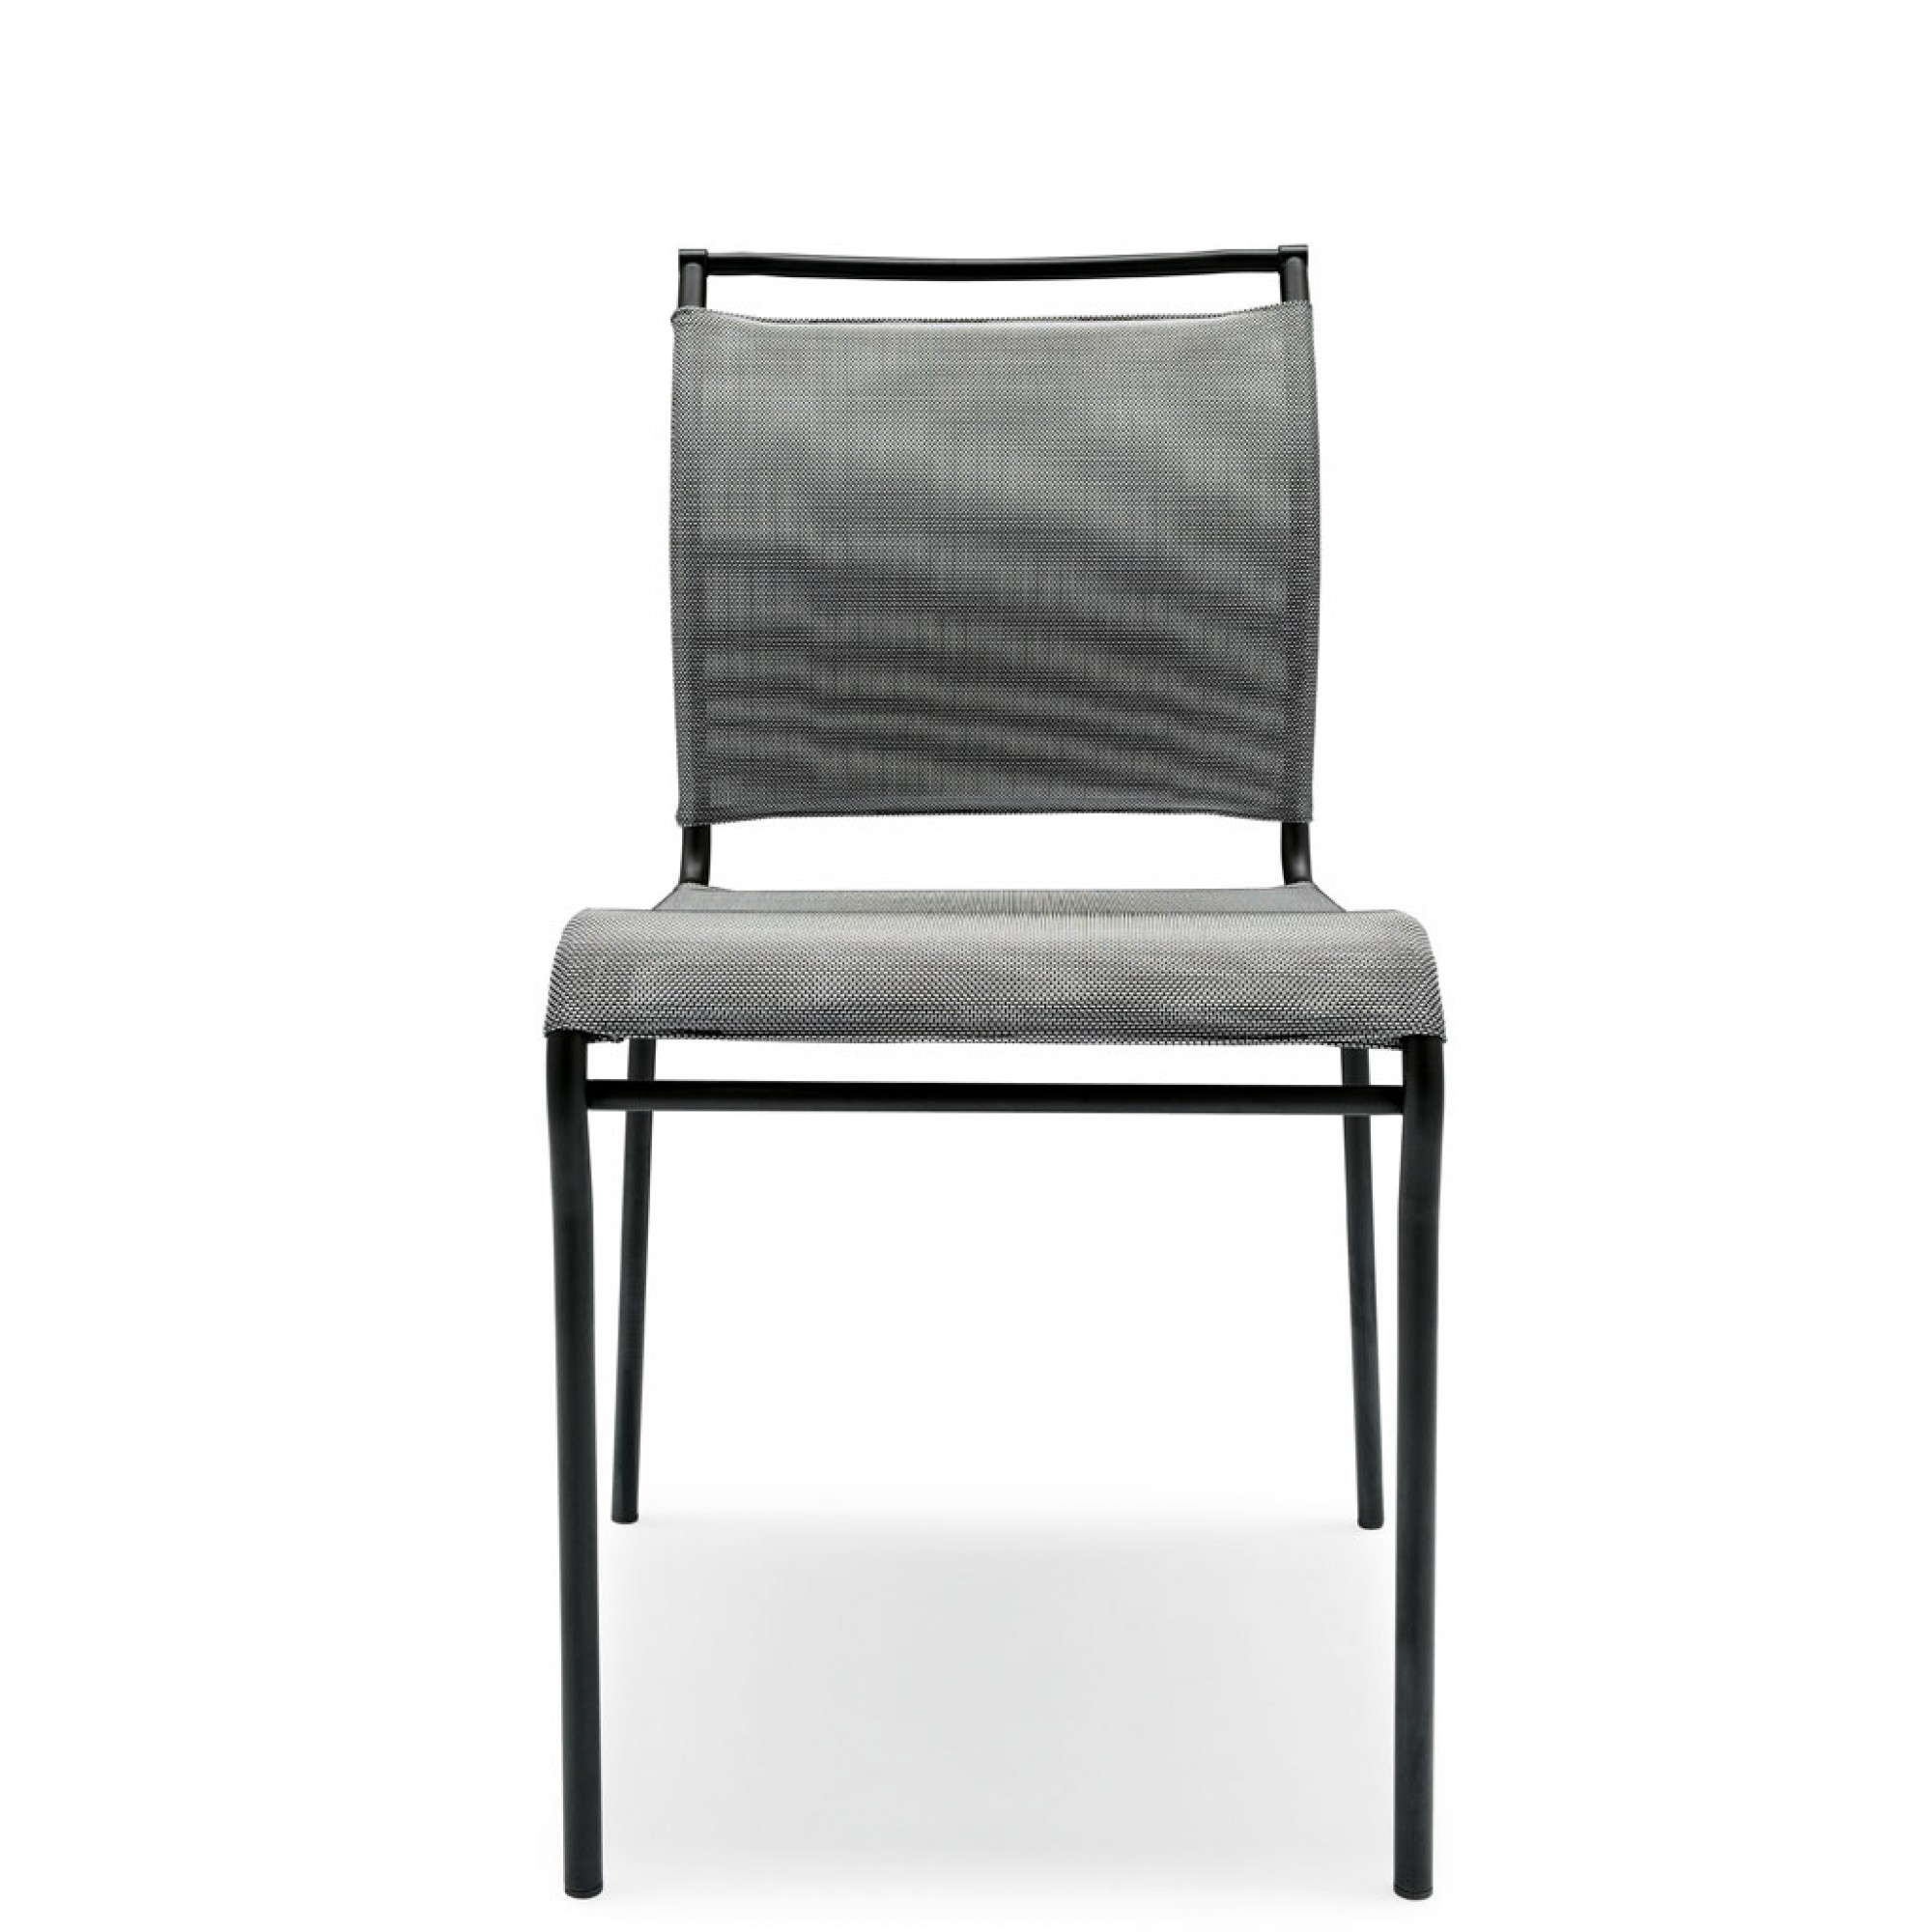 Sedia Air Calligaris.Air Chairs Seats Connubia By Calligaris Masonionline